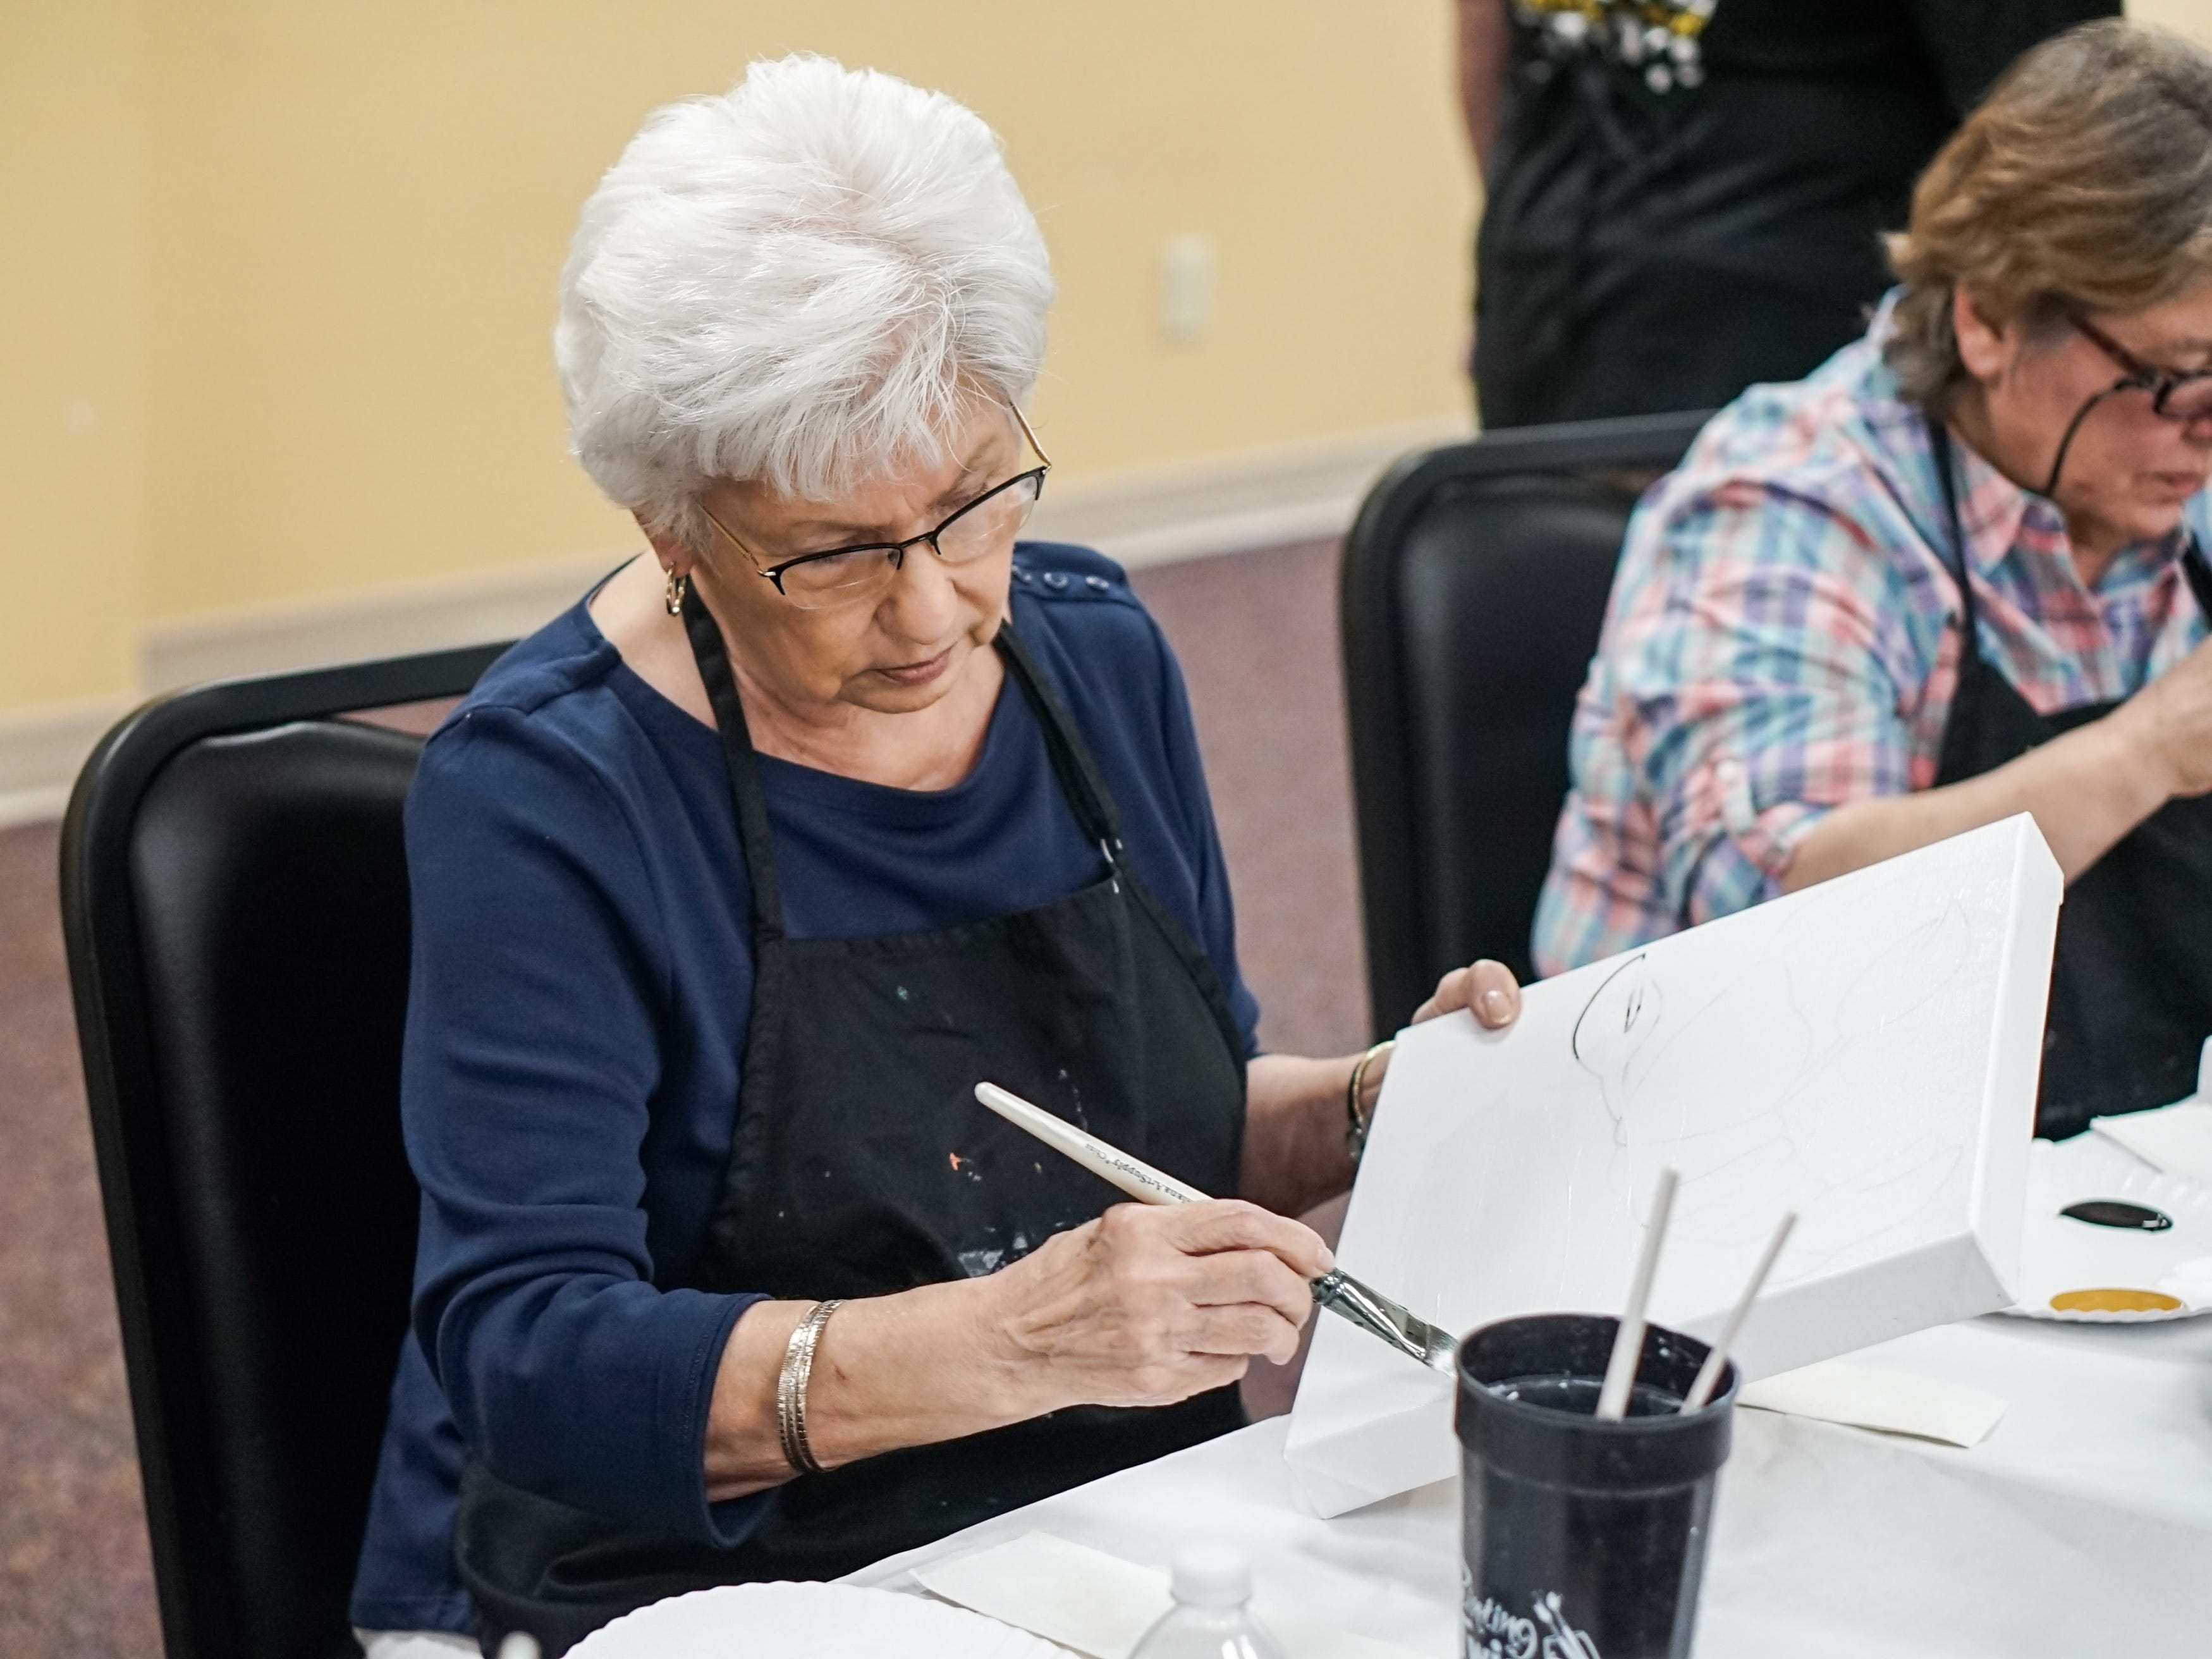 Former stroke patient Joyce Veillon enjoys painting during an event May 14 put on in conjunction with Painting with a Twist.